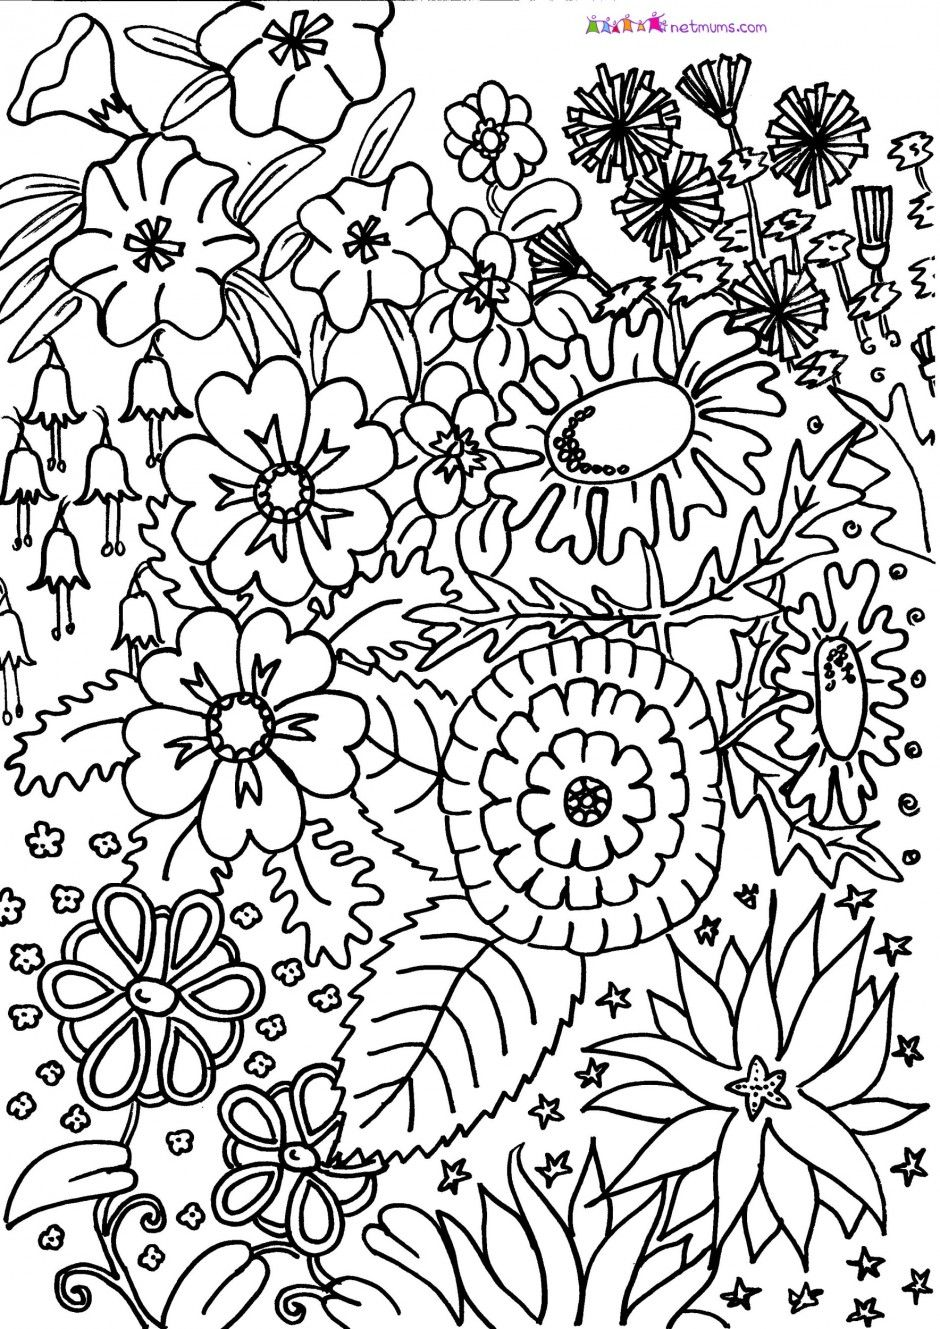 Coloring Pages for children is a wonderful activity that ...